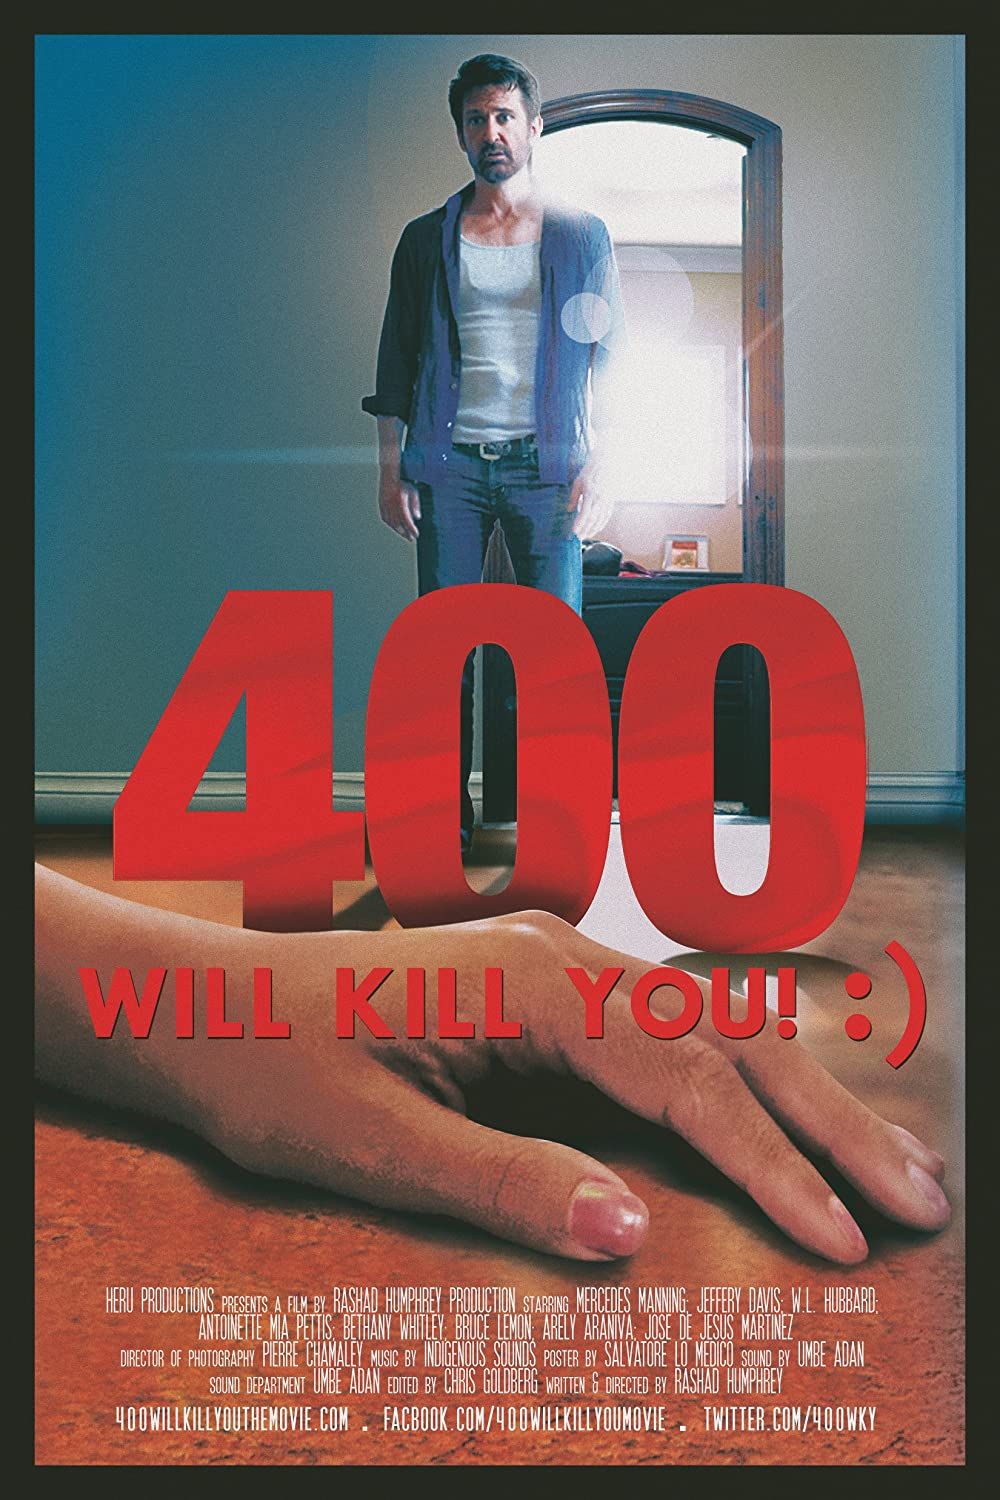 Watch 400 Will Kill You! :) Online